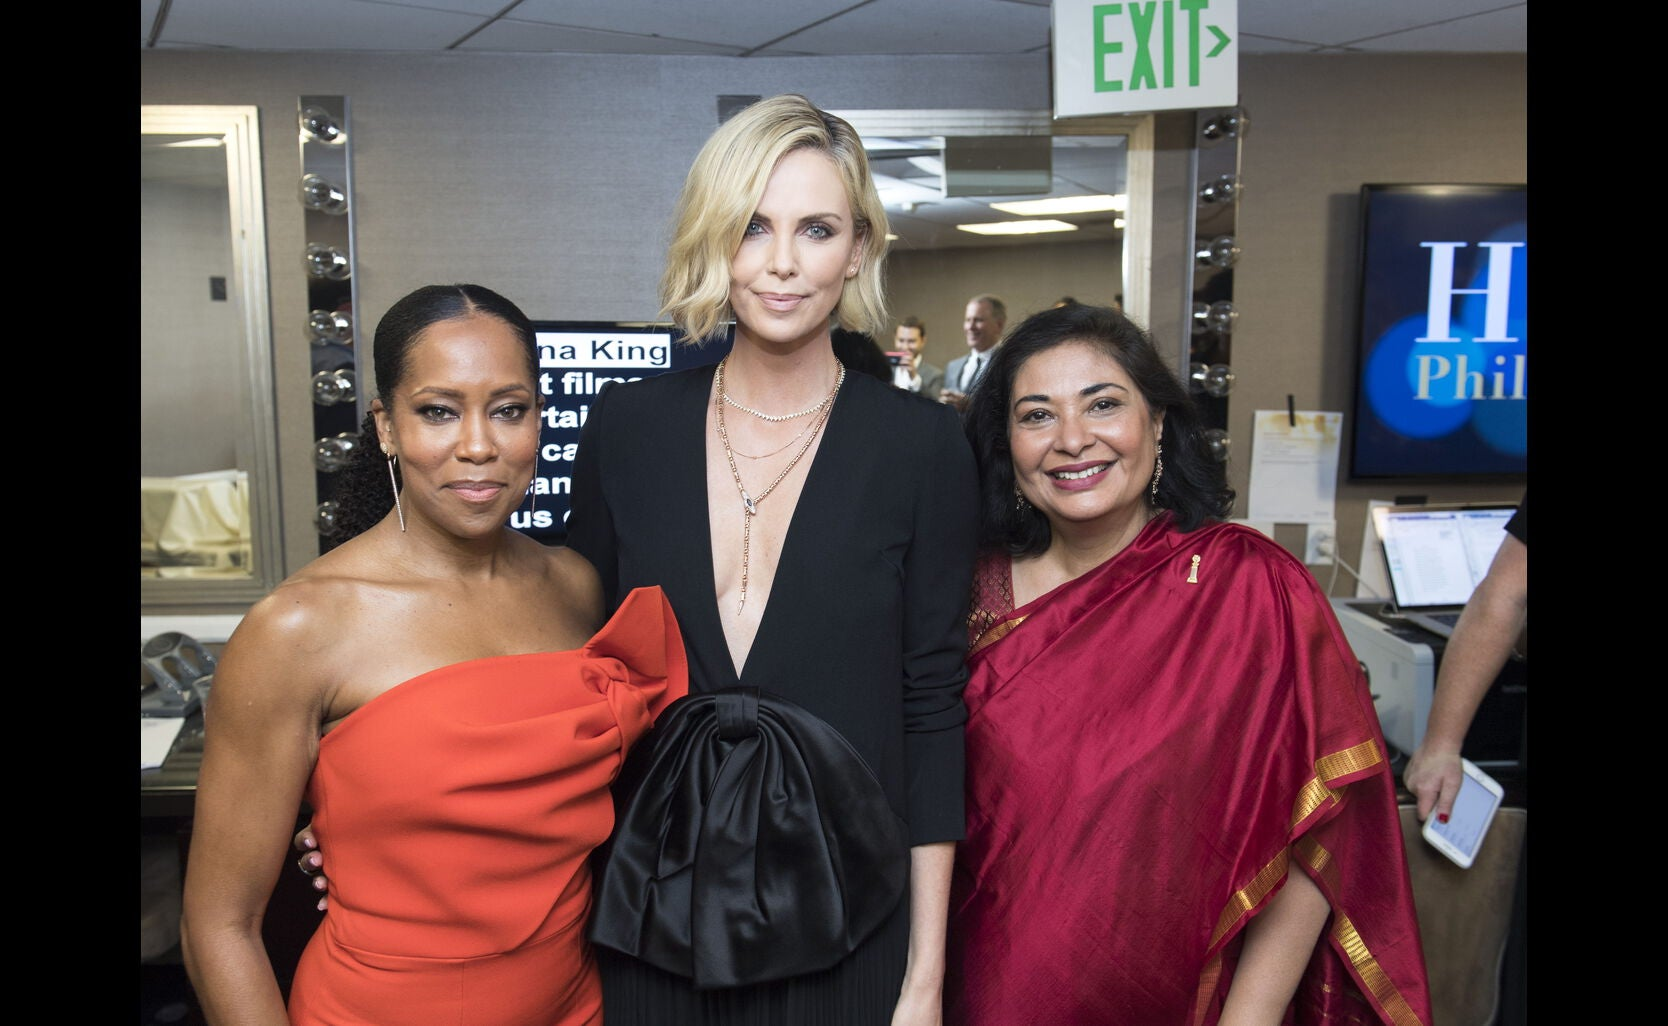 HFPA President Meher Tatna, Charlzie Theron and Regina King at the 2018 Grants Banquet